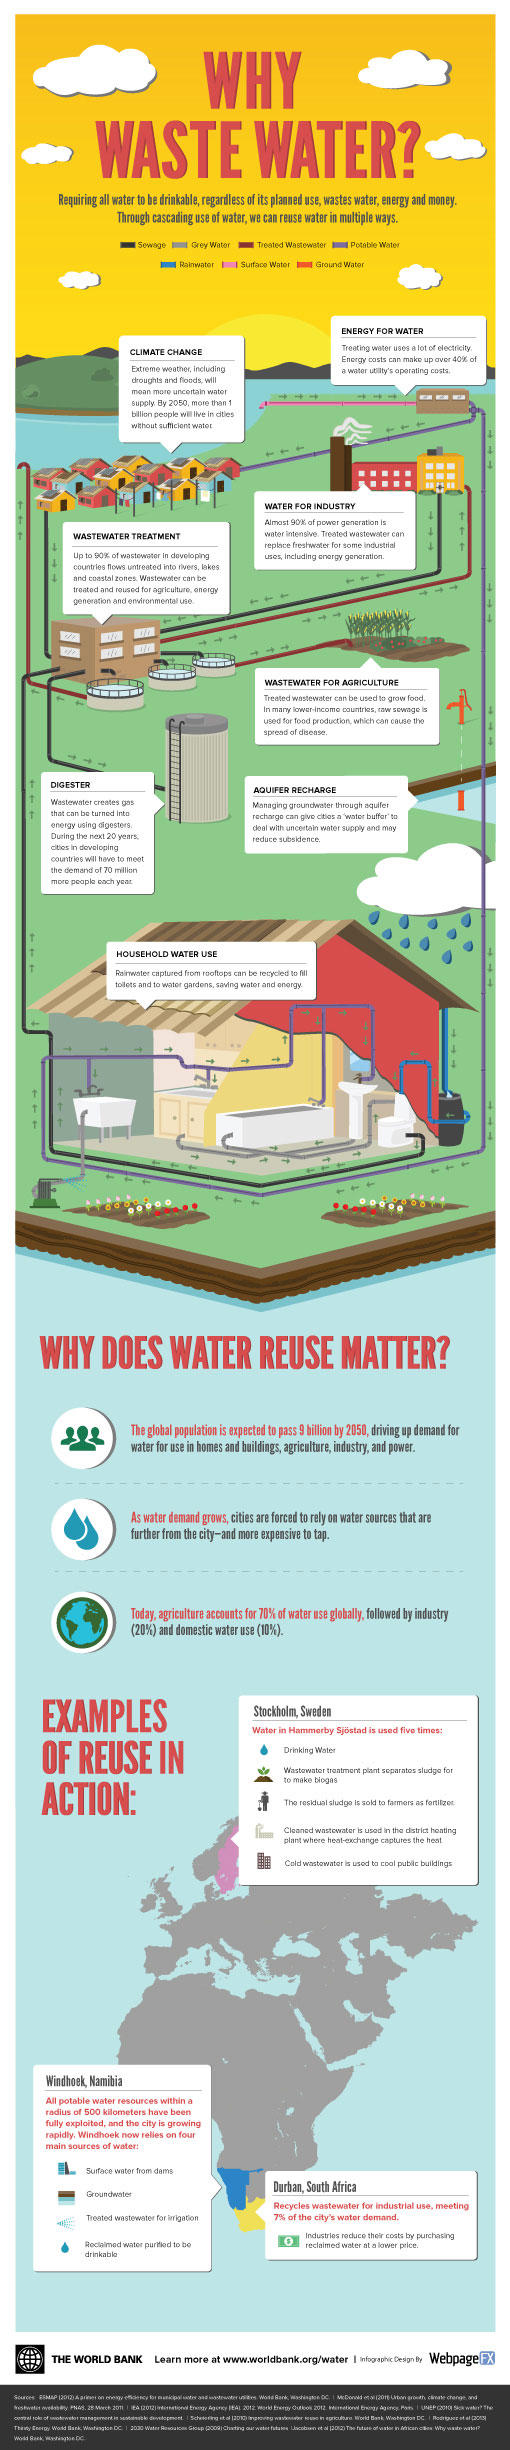 Infographic: Why Waste Water?